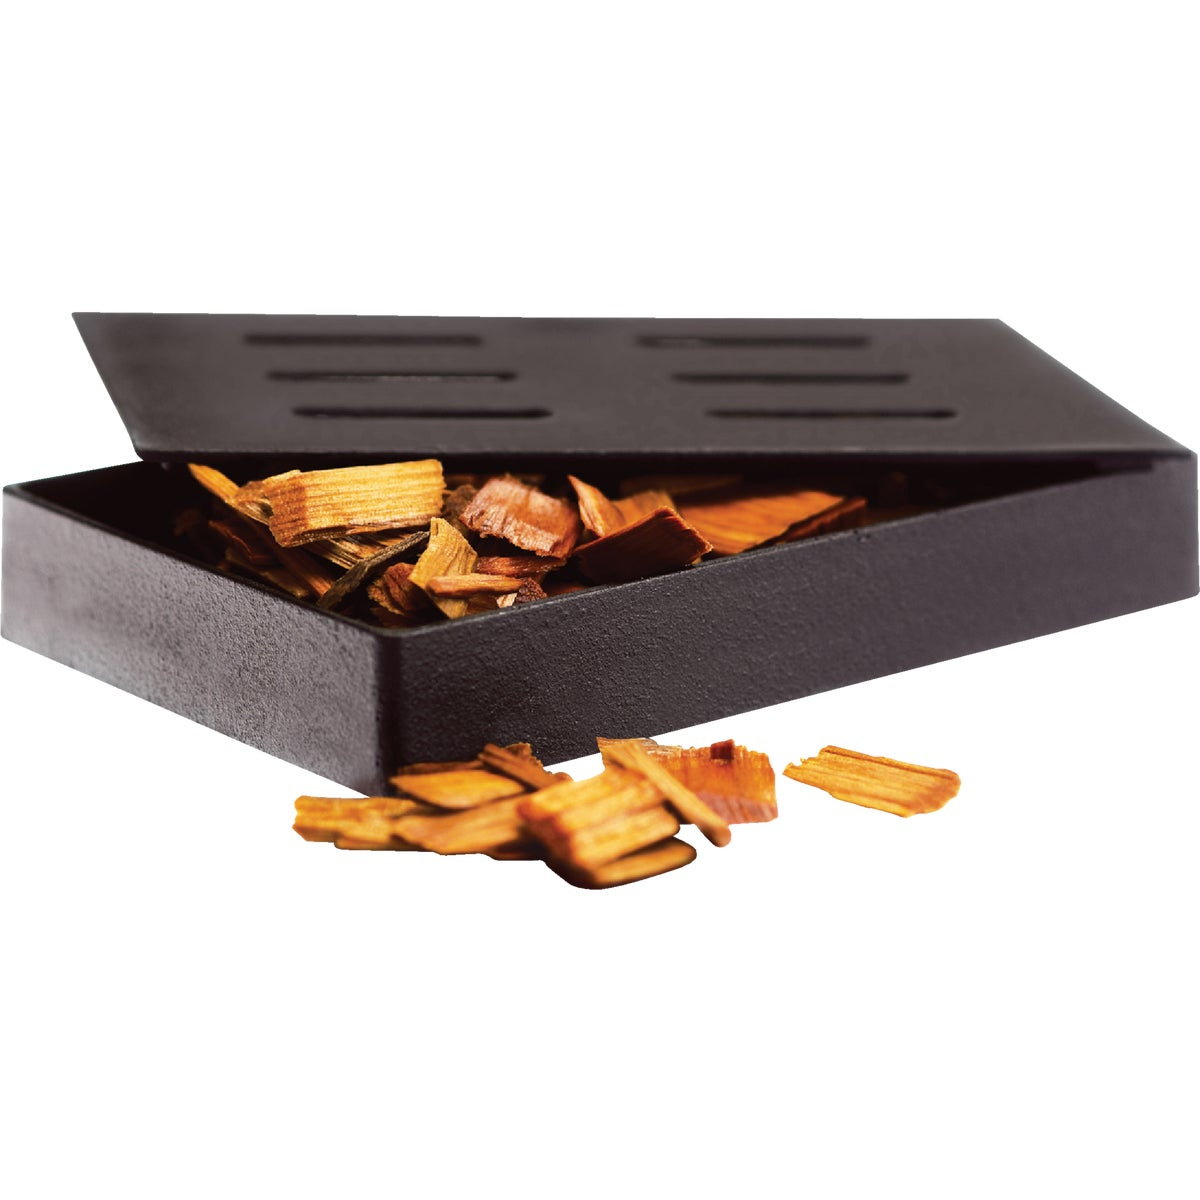 CAST IRON SMOKER BOX - 00150 by Onward Multi Corp Y1